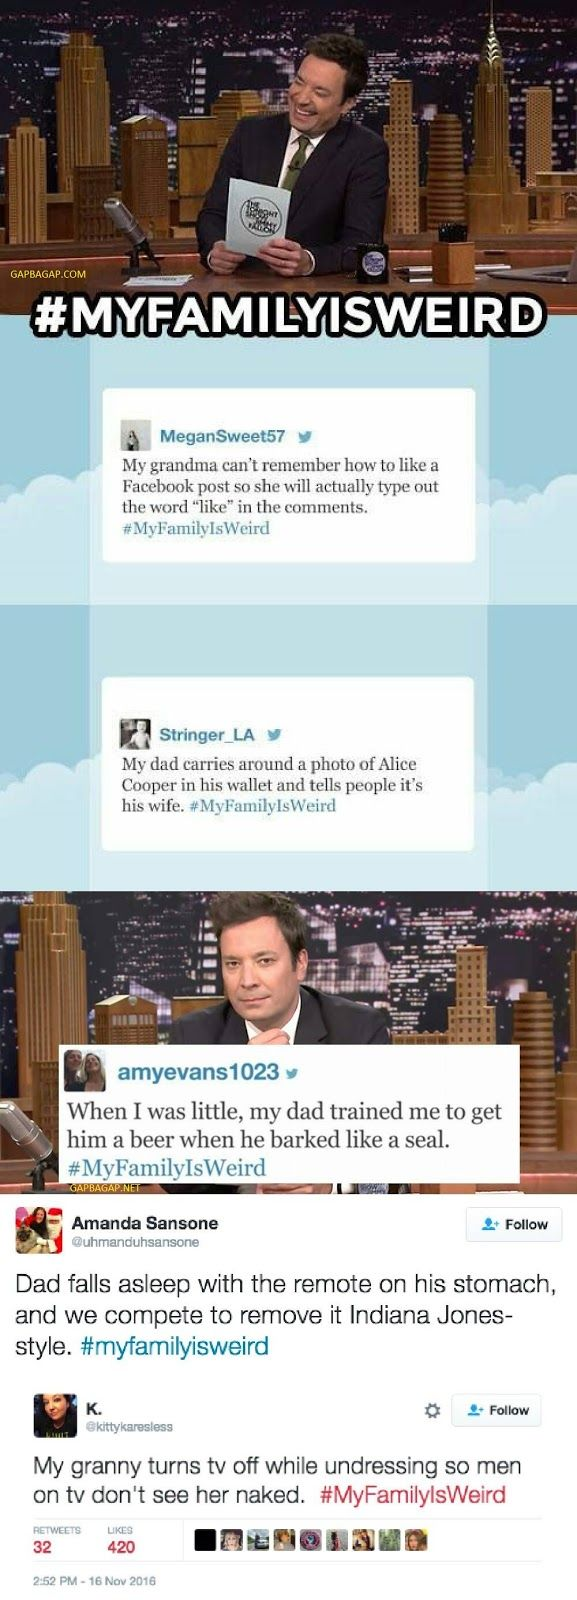 Top 10 Funniest Tweets About #MyFamilyIsWeird ft. Jimmy Fallon